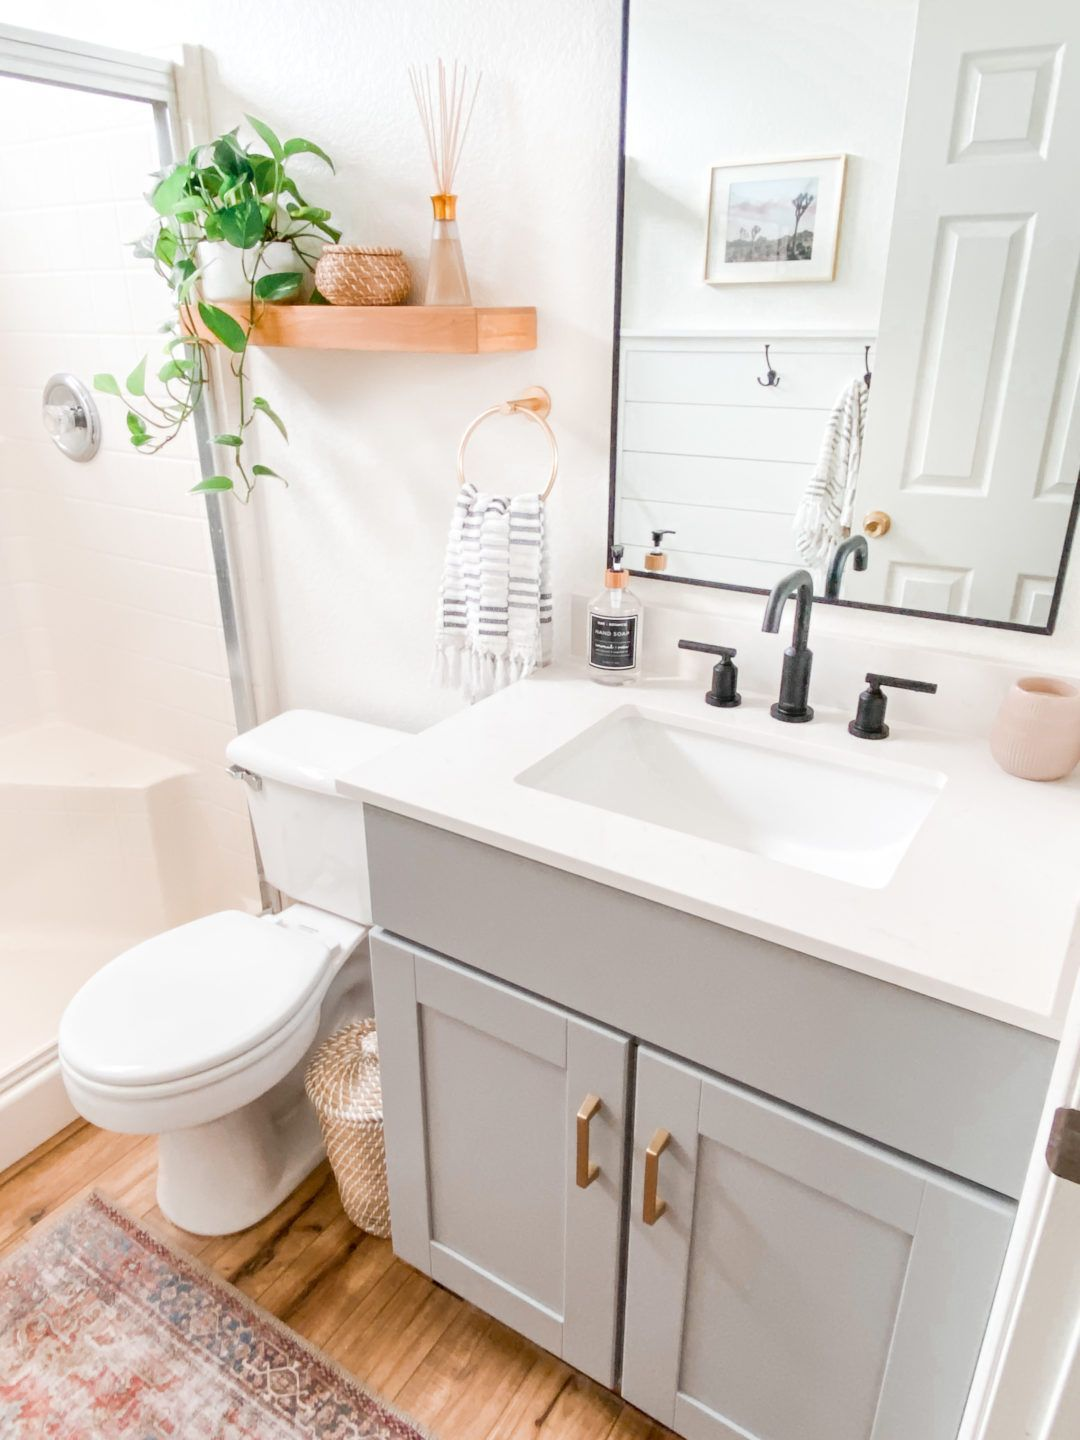 Small Bathroom Remodel Ideas: Befor and After | Domestic Blonde